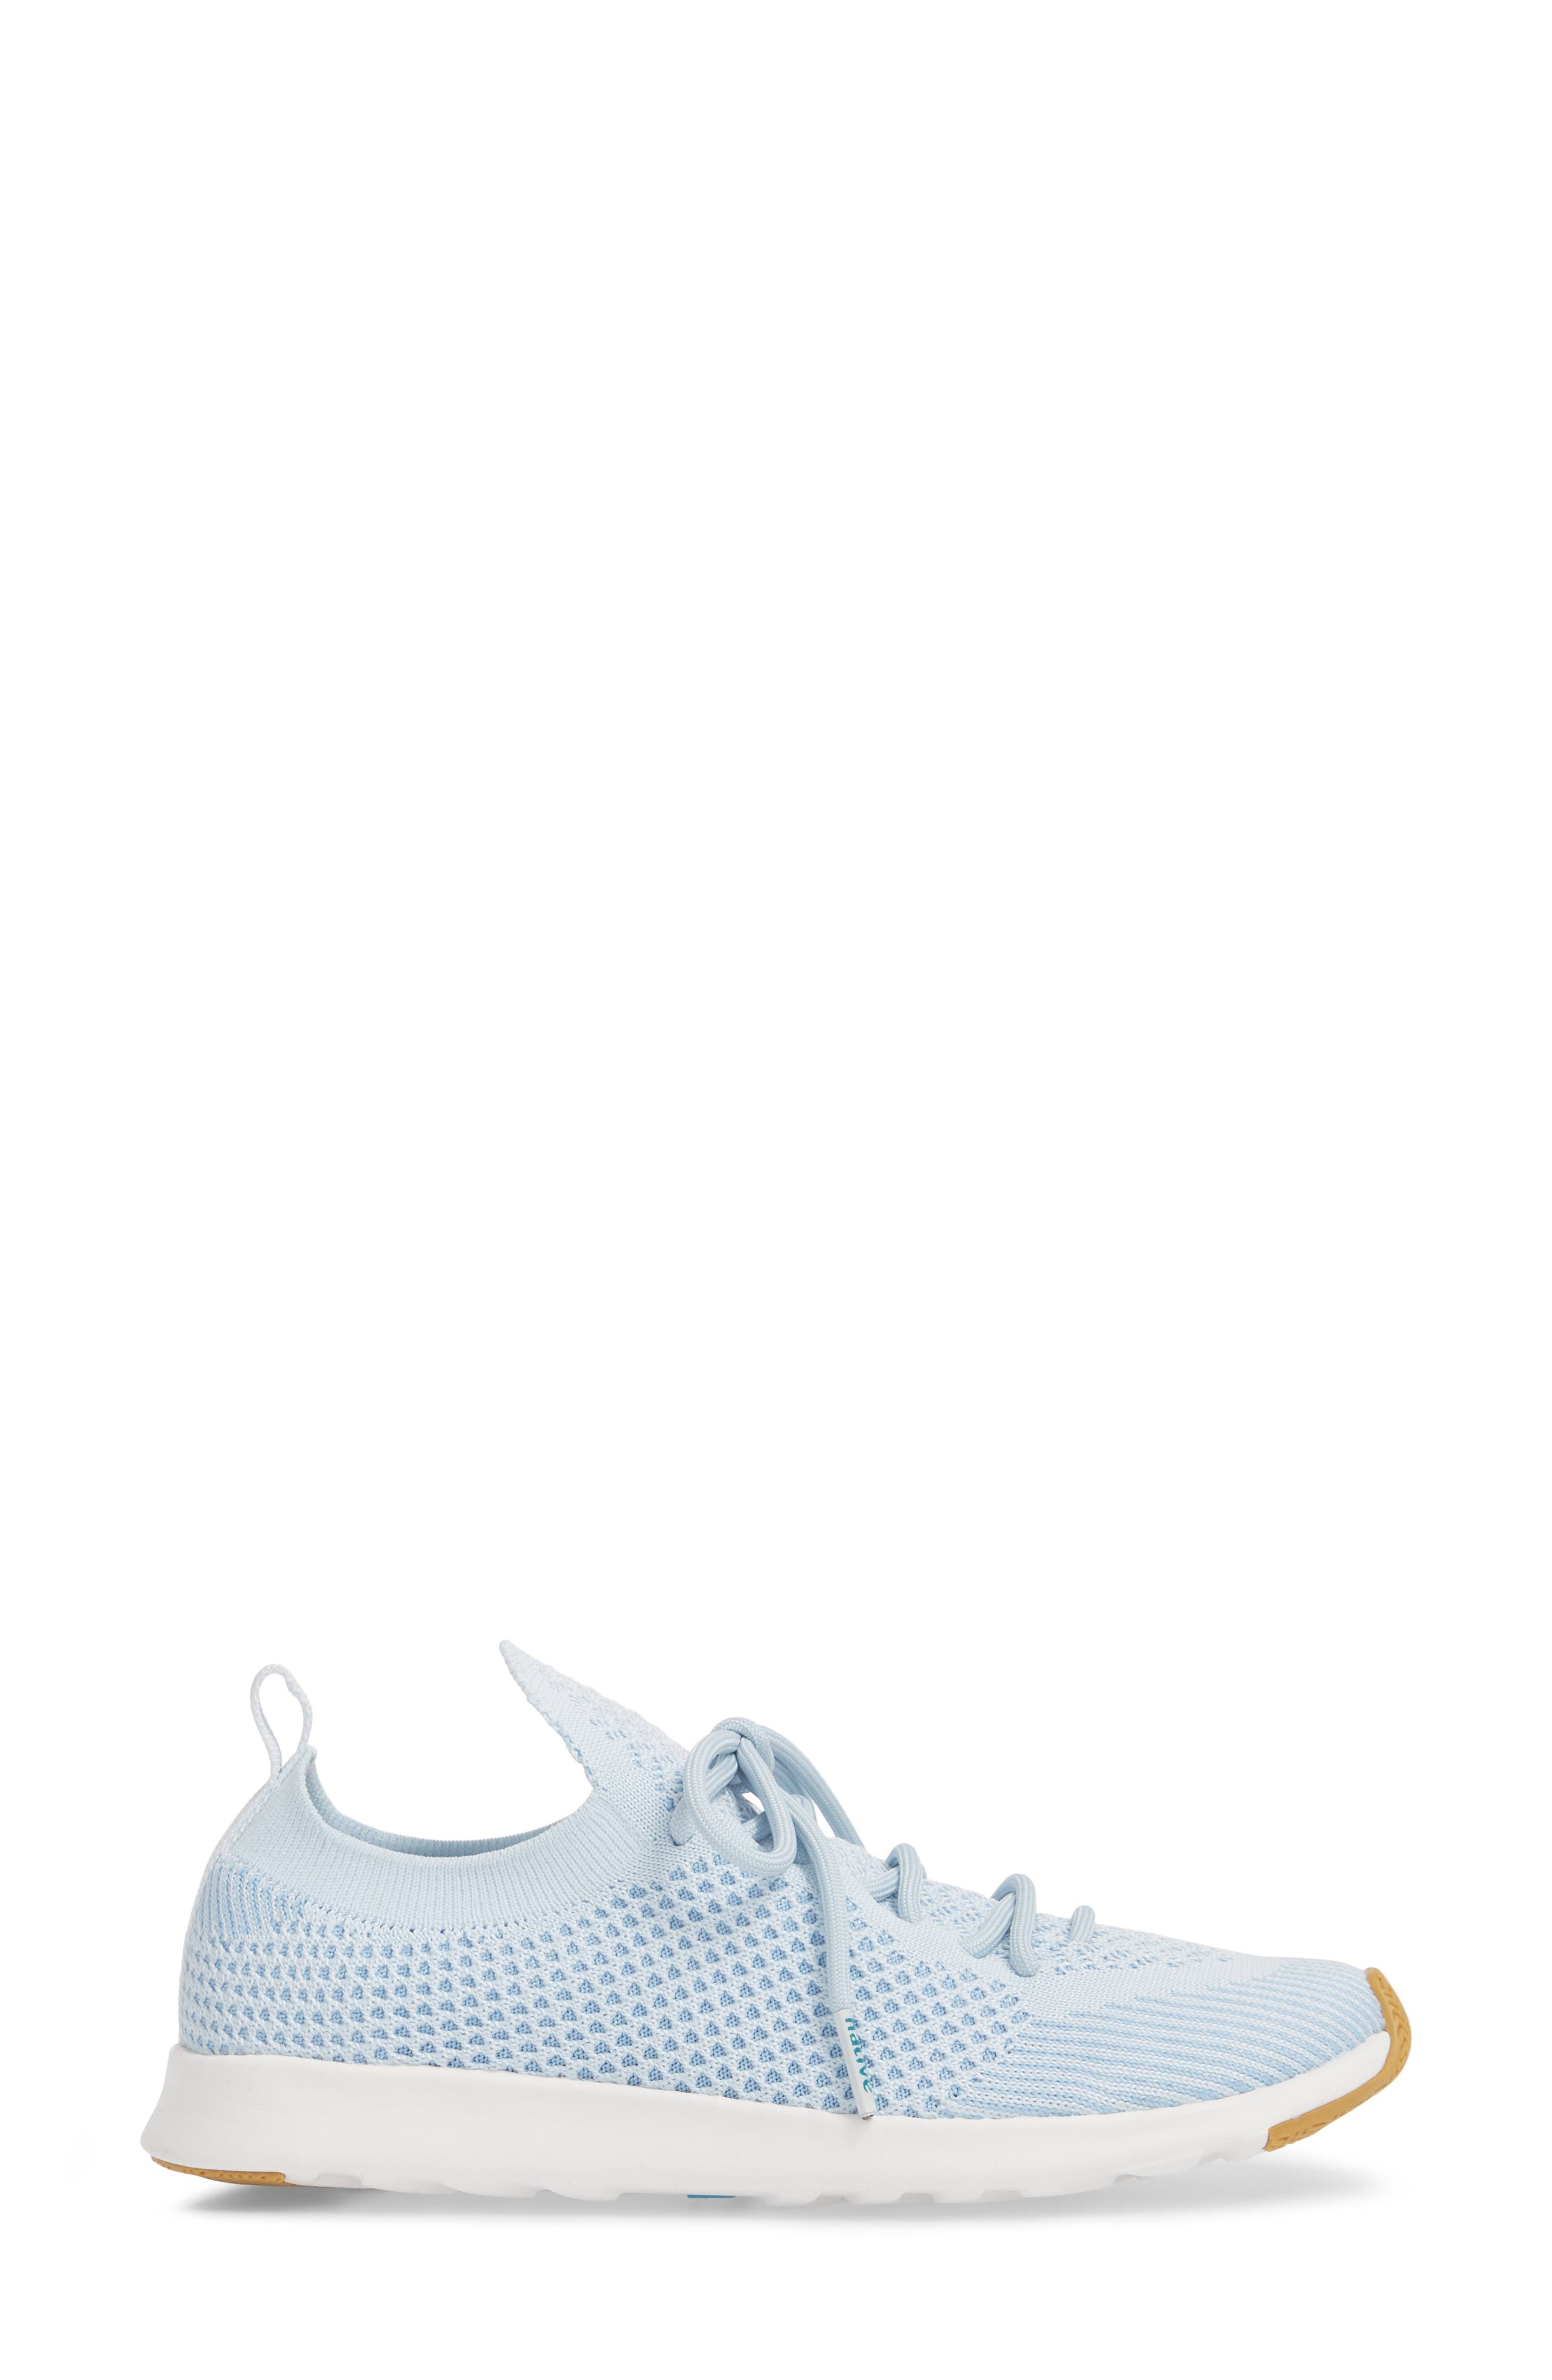 AP Mercury Liteknit Sneaker,                             Alternate thumbnail 3, color,                             AIR BLUE/ SHELL WHITE/ NATURAL